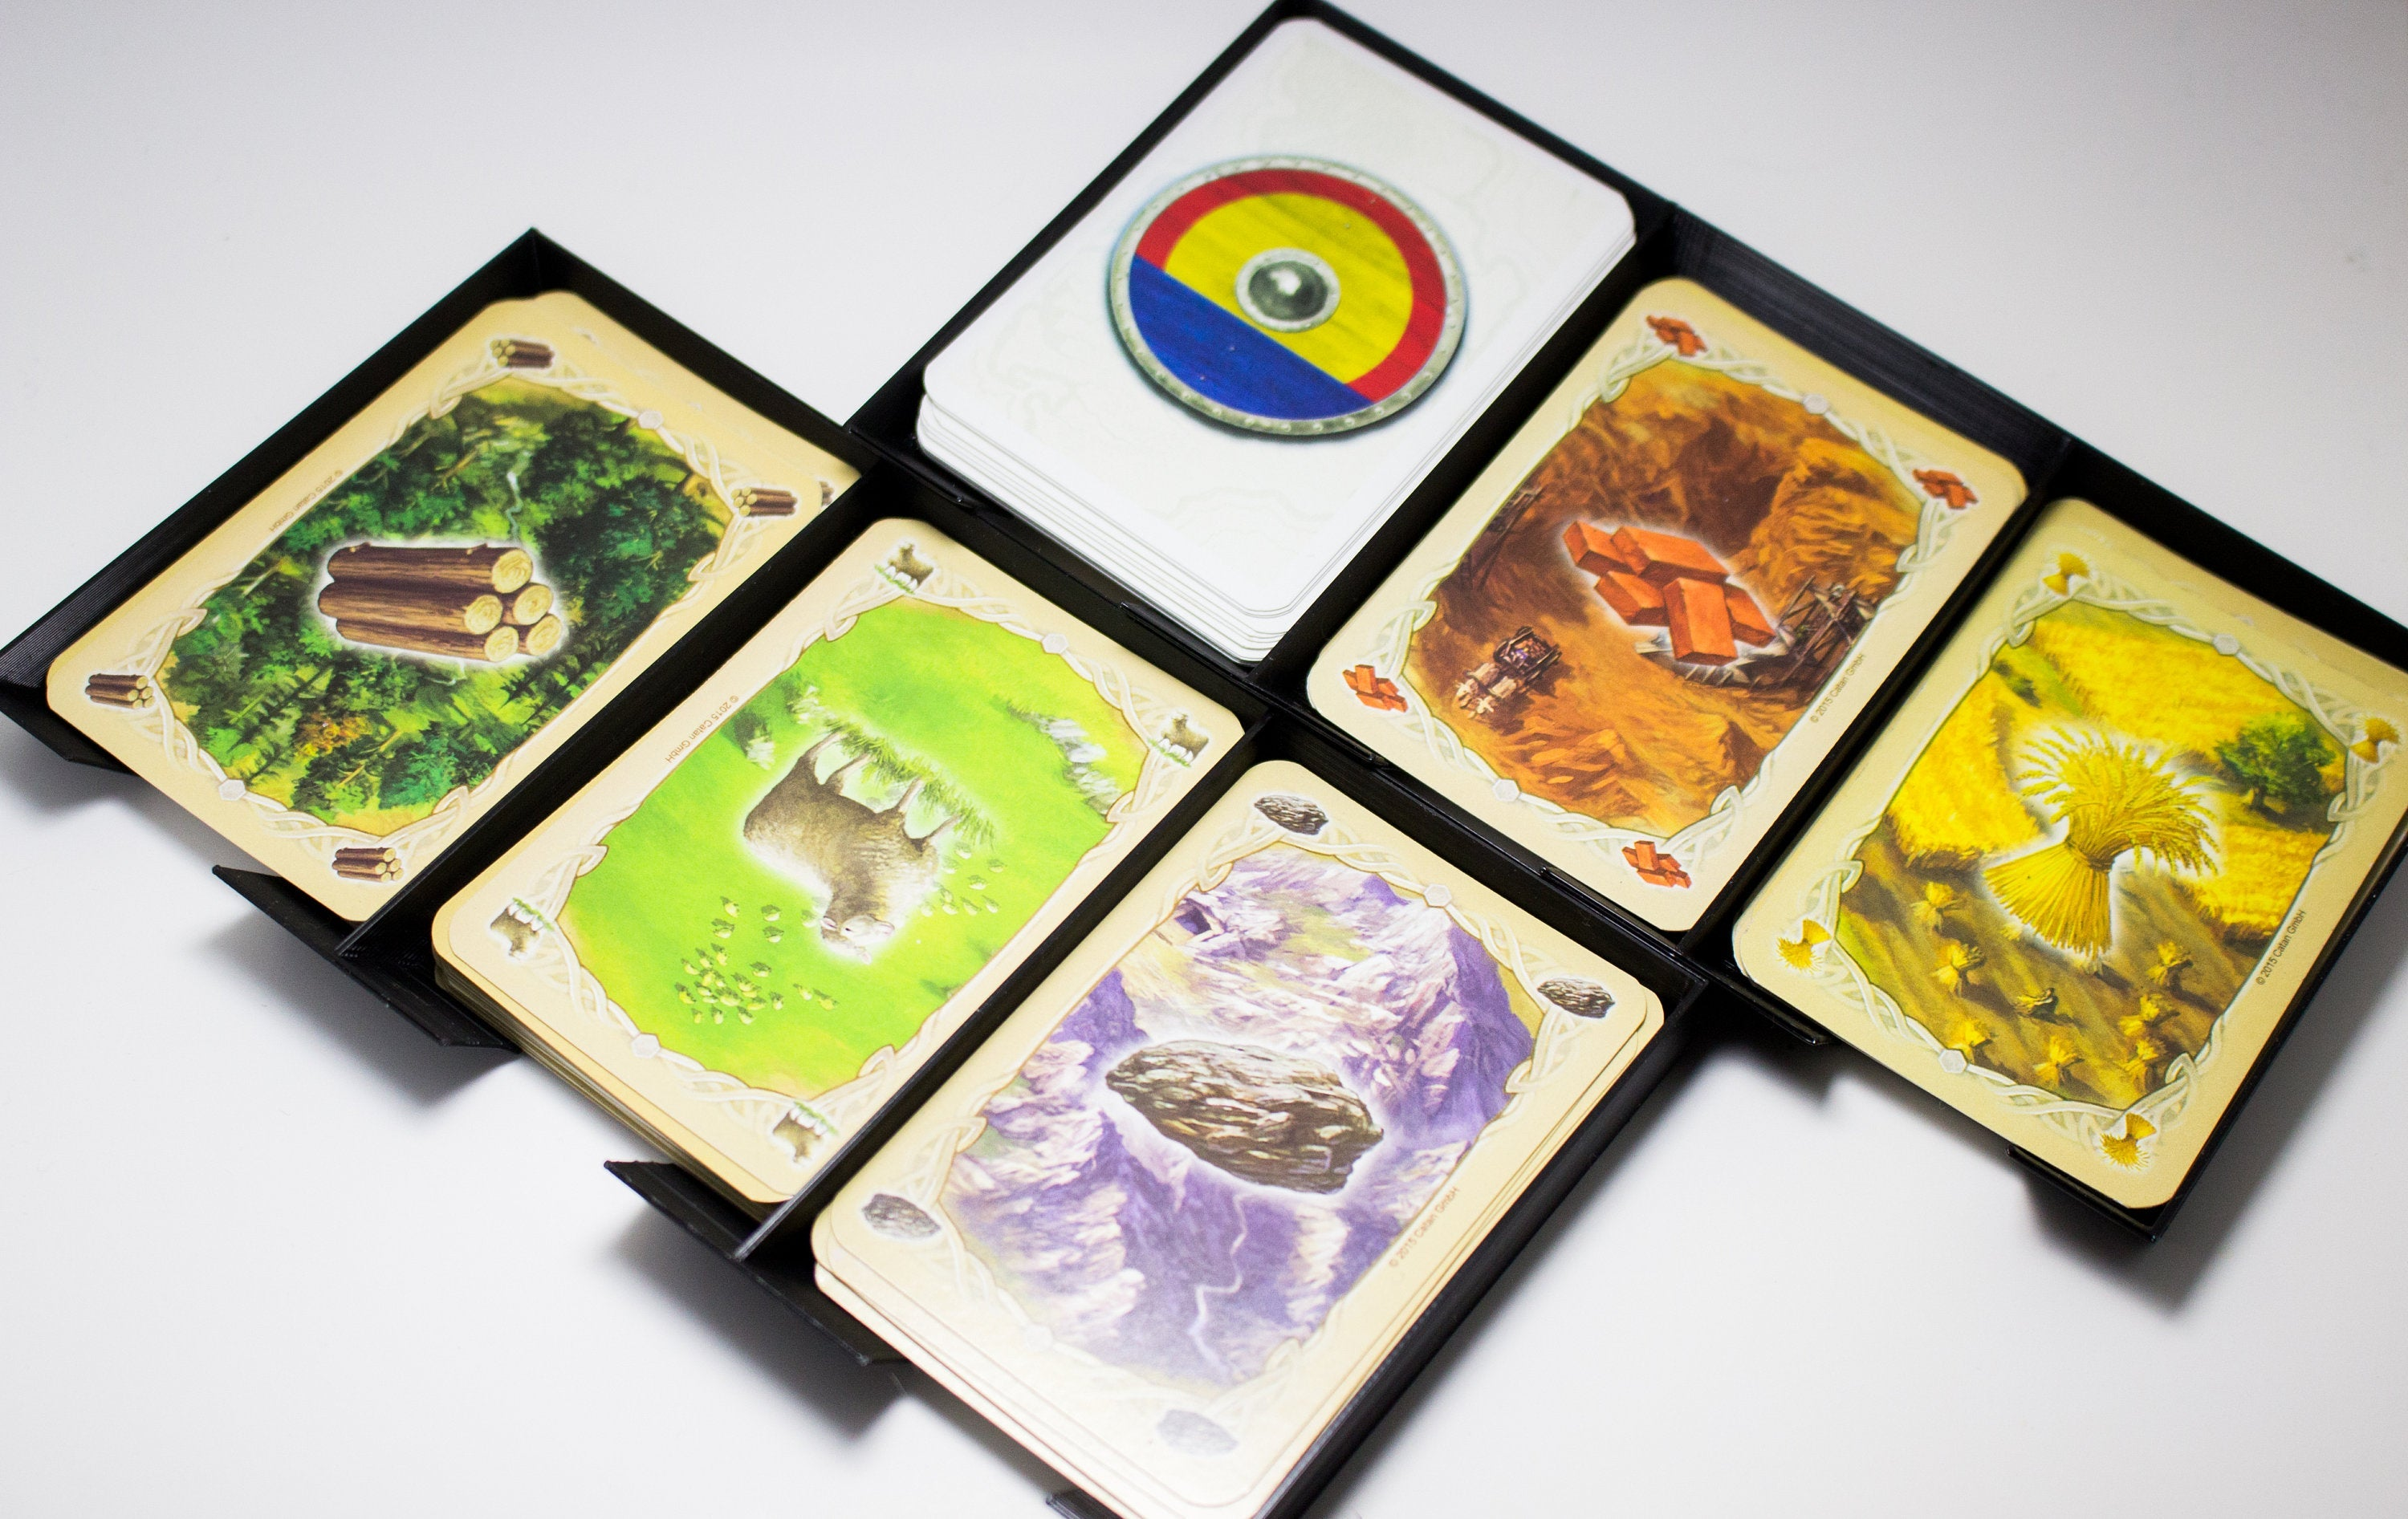 graphic about Settlers of Catan Printable titled Catan Card Holder Tray Organizer 3D Print Settlers of Catan